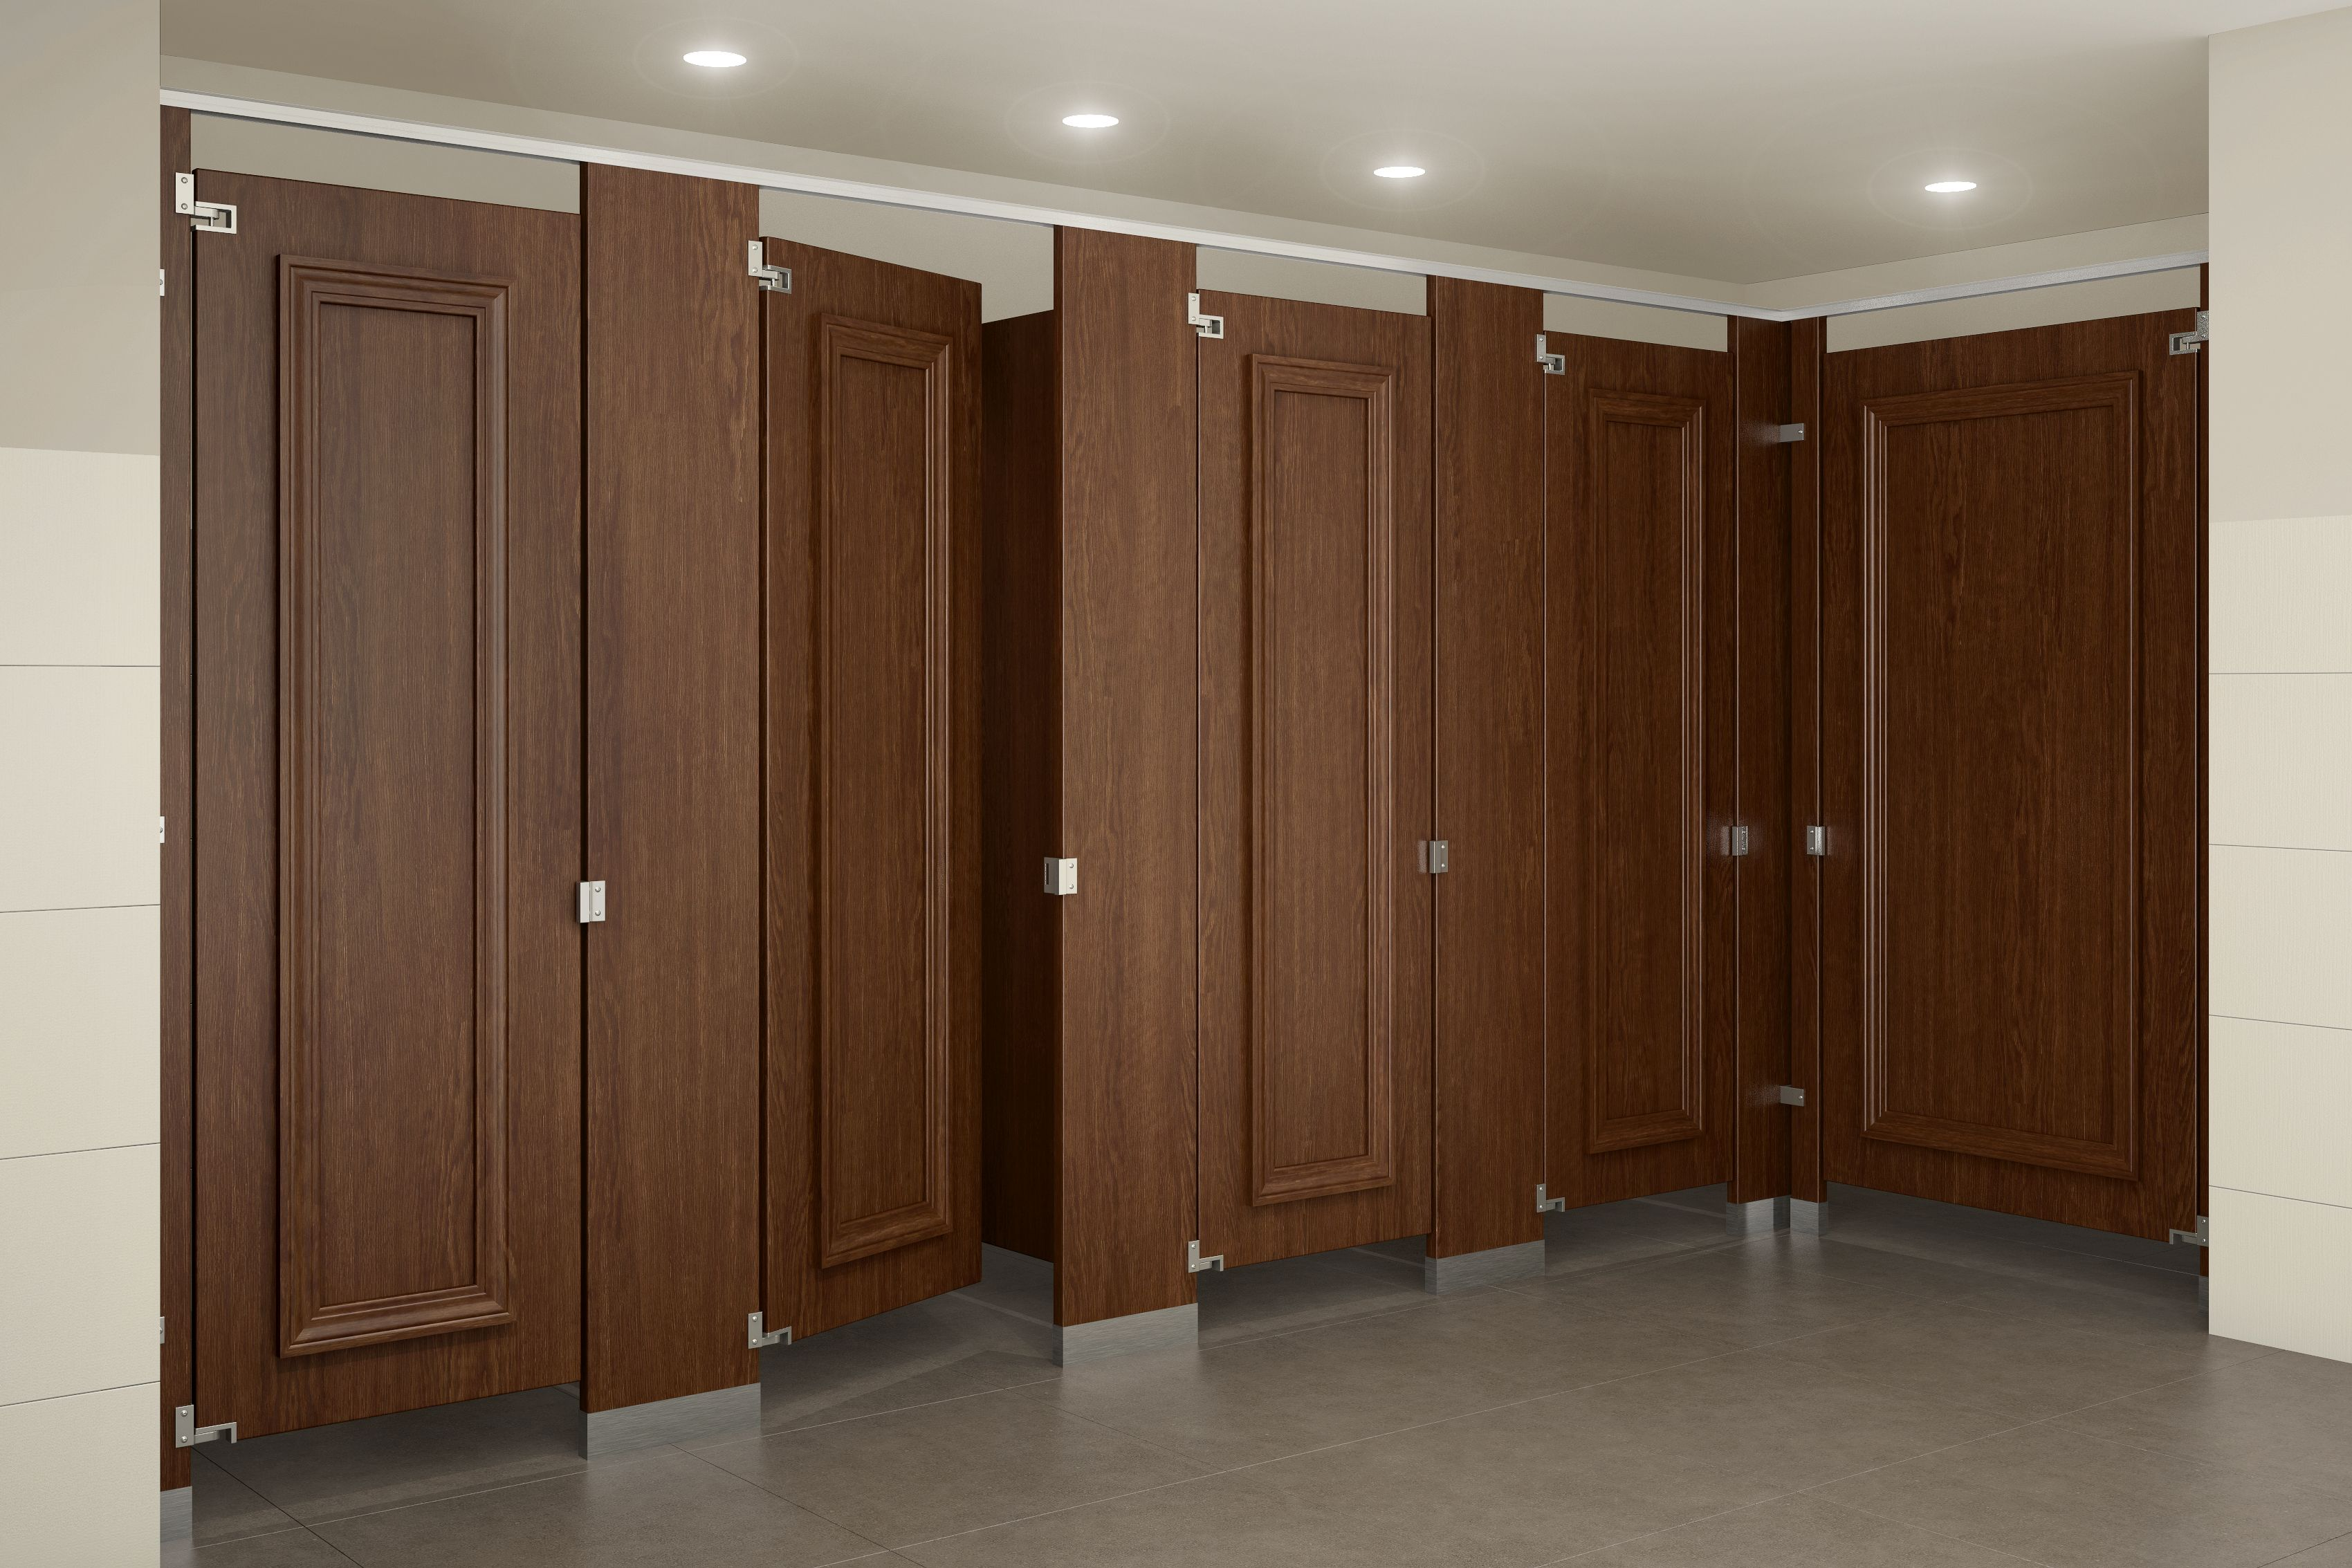 ironwood manufacturing wood veneer toilet partitions and bathroom doors with molding beautiful